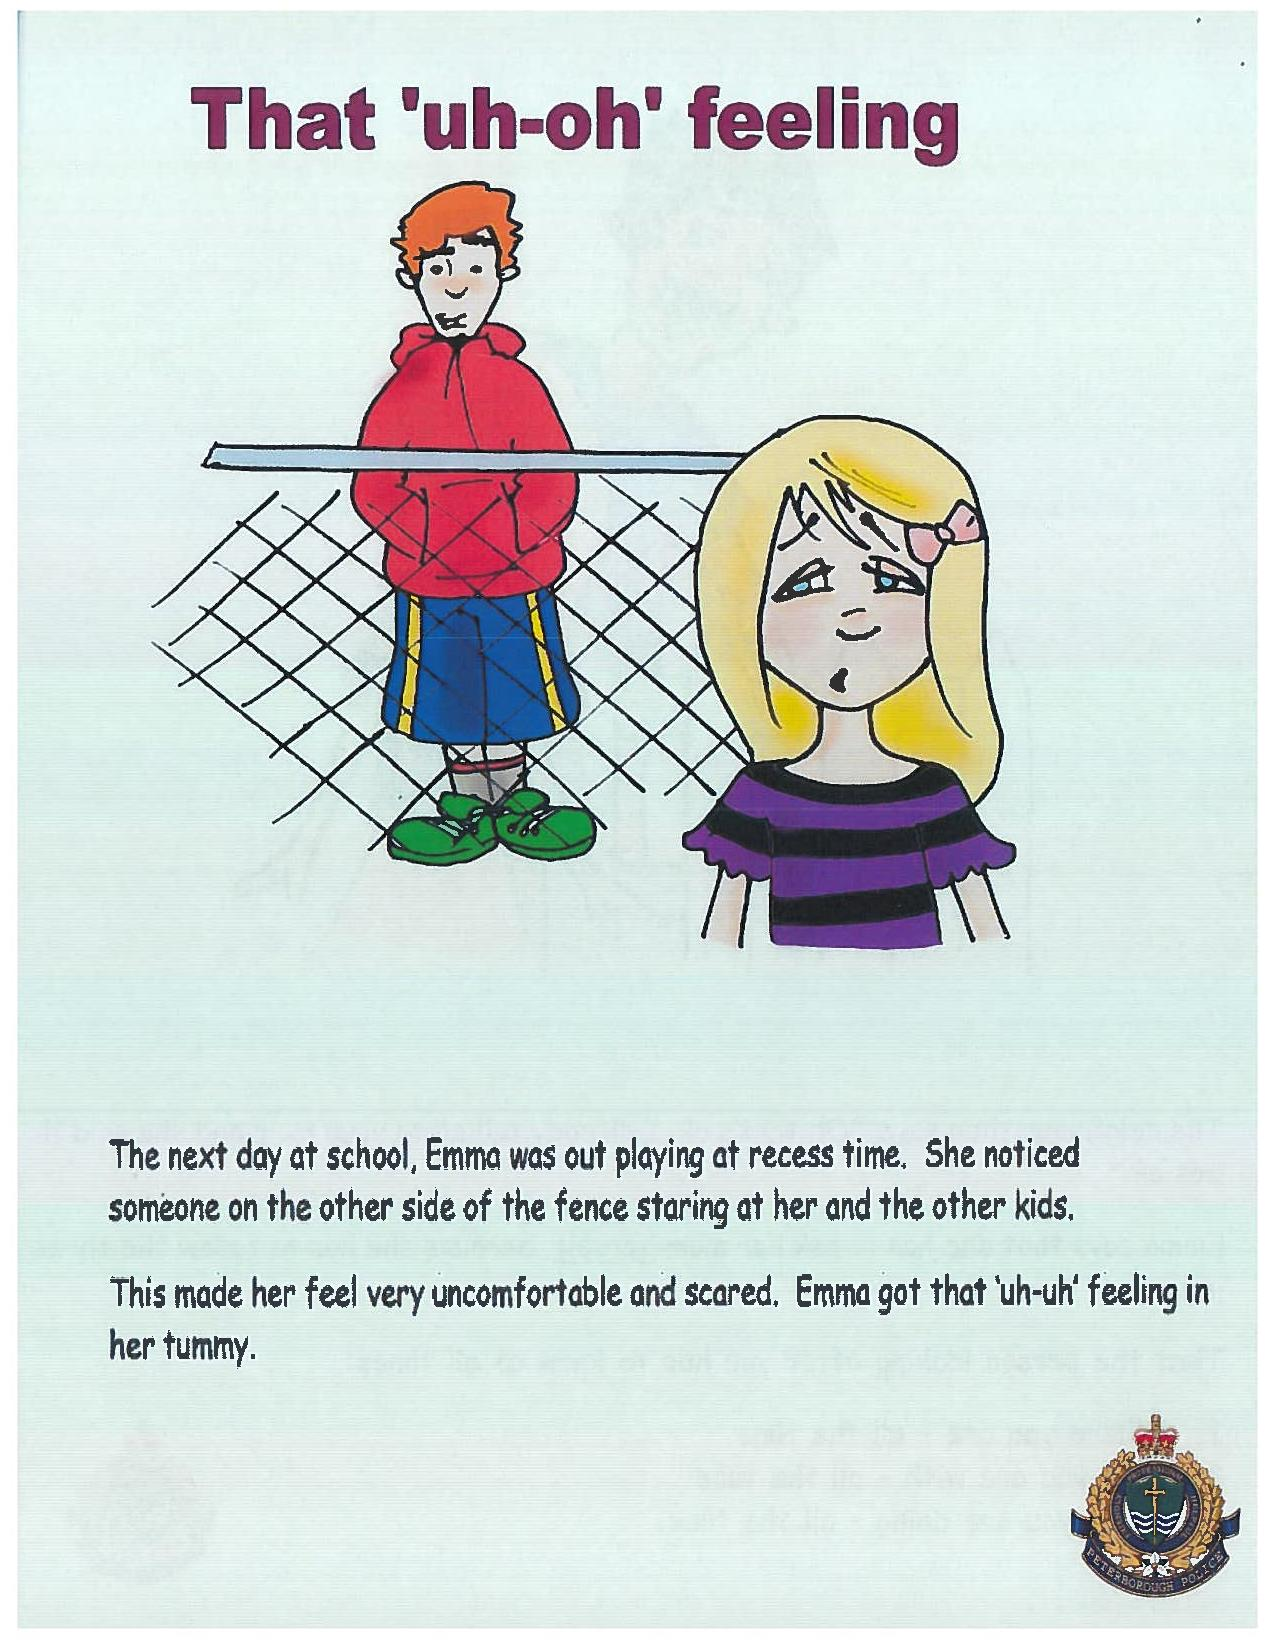 "A cartoon image shows a man standing on the opposite side of a fence while a girl looks at him uneasily. Text in the image says""The next day at school, Emma was out playing at recess time. She noticed someone on the other side of the fence staring at her and the other kids. This made her feel very uncomfortable and scared. Emma got the 'uh-uh' feeling in her tummy."""